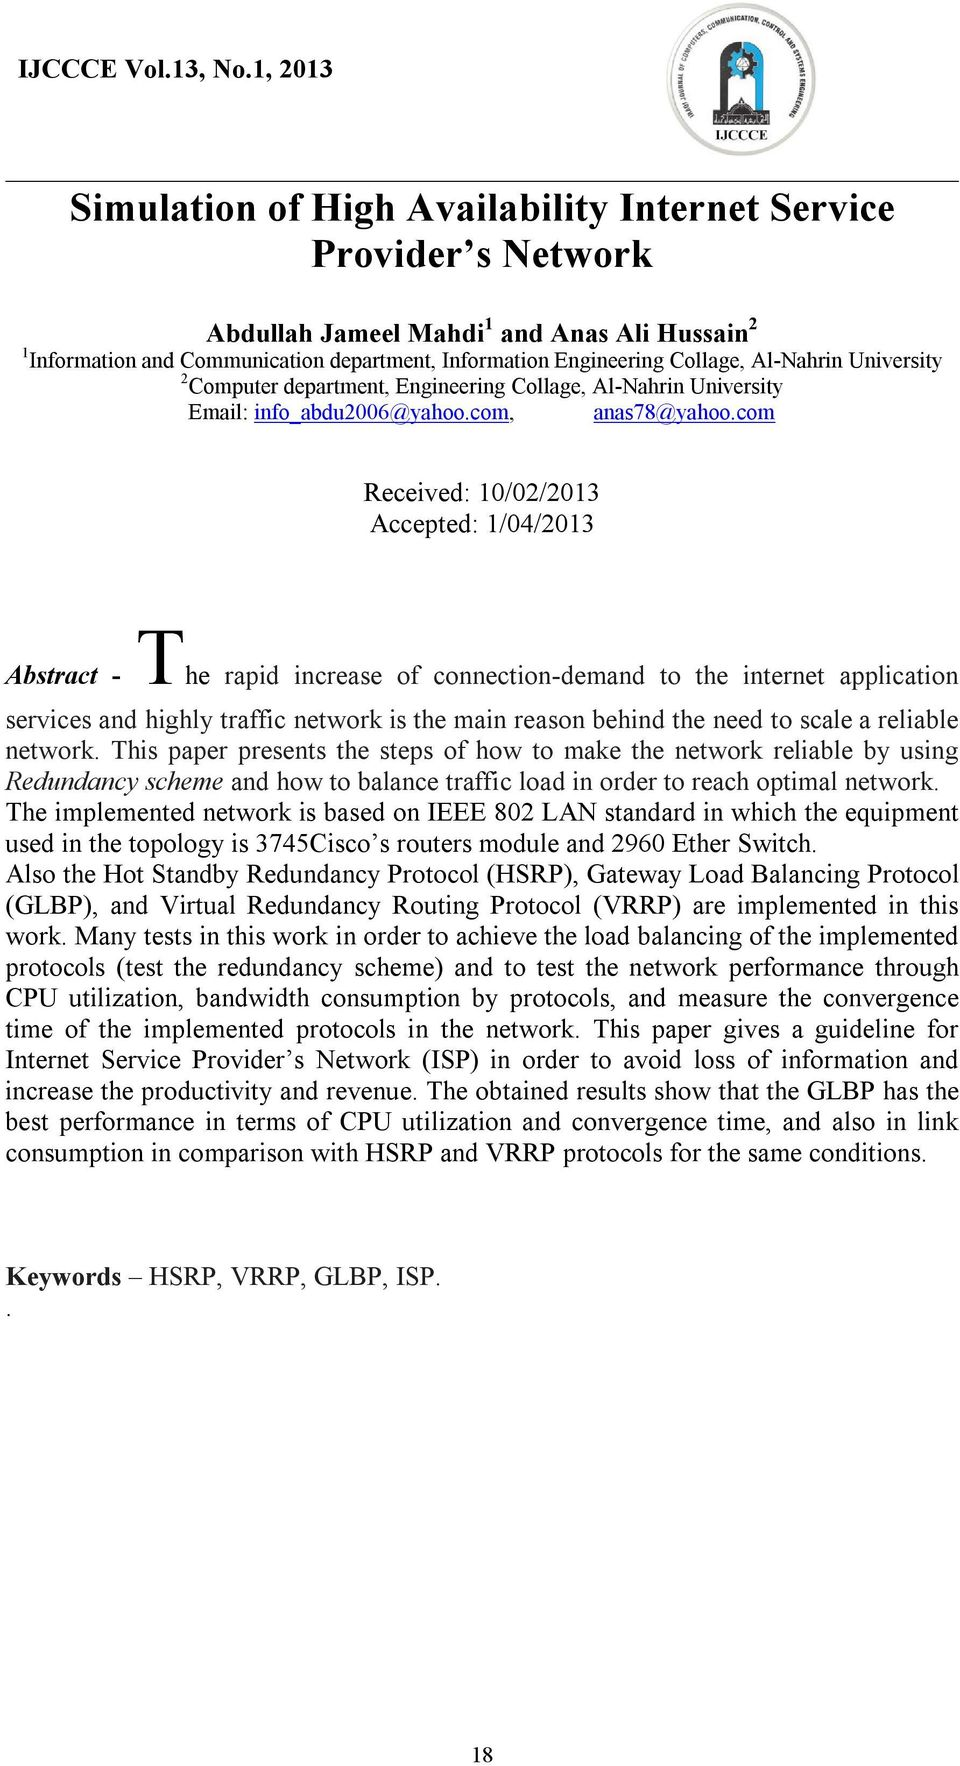 com Received: 10/02/2013 Accepted: 1/04/2013 Abstract - The rapid increase of connection-demand to the internet application services and highly traffic network is the main reason behind the need to